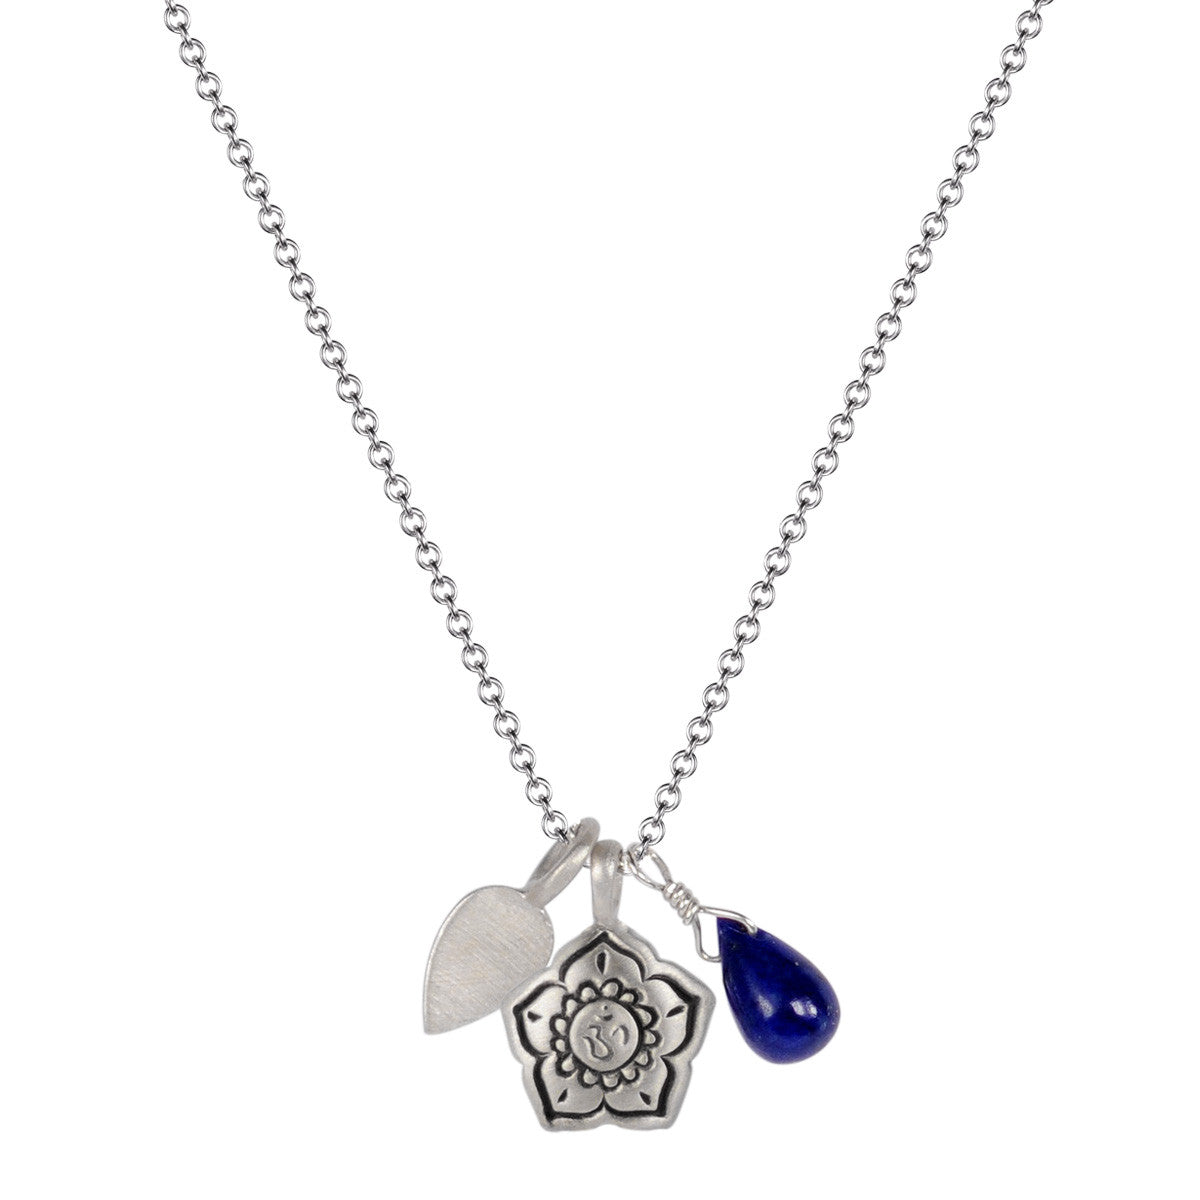 Sterling Silver Om Flower Trinket with Lapis